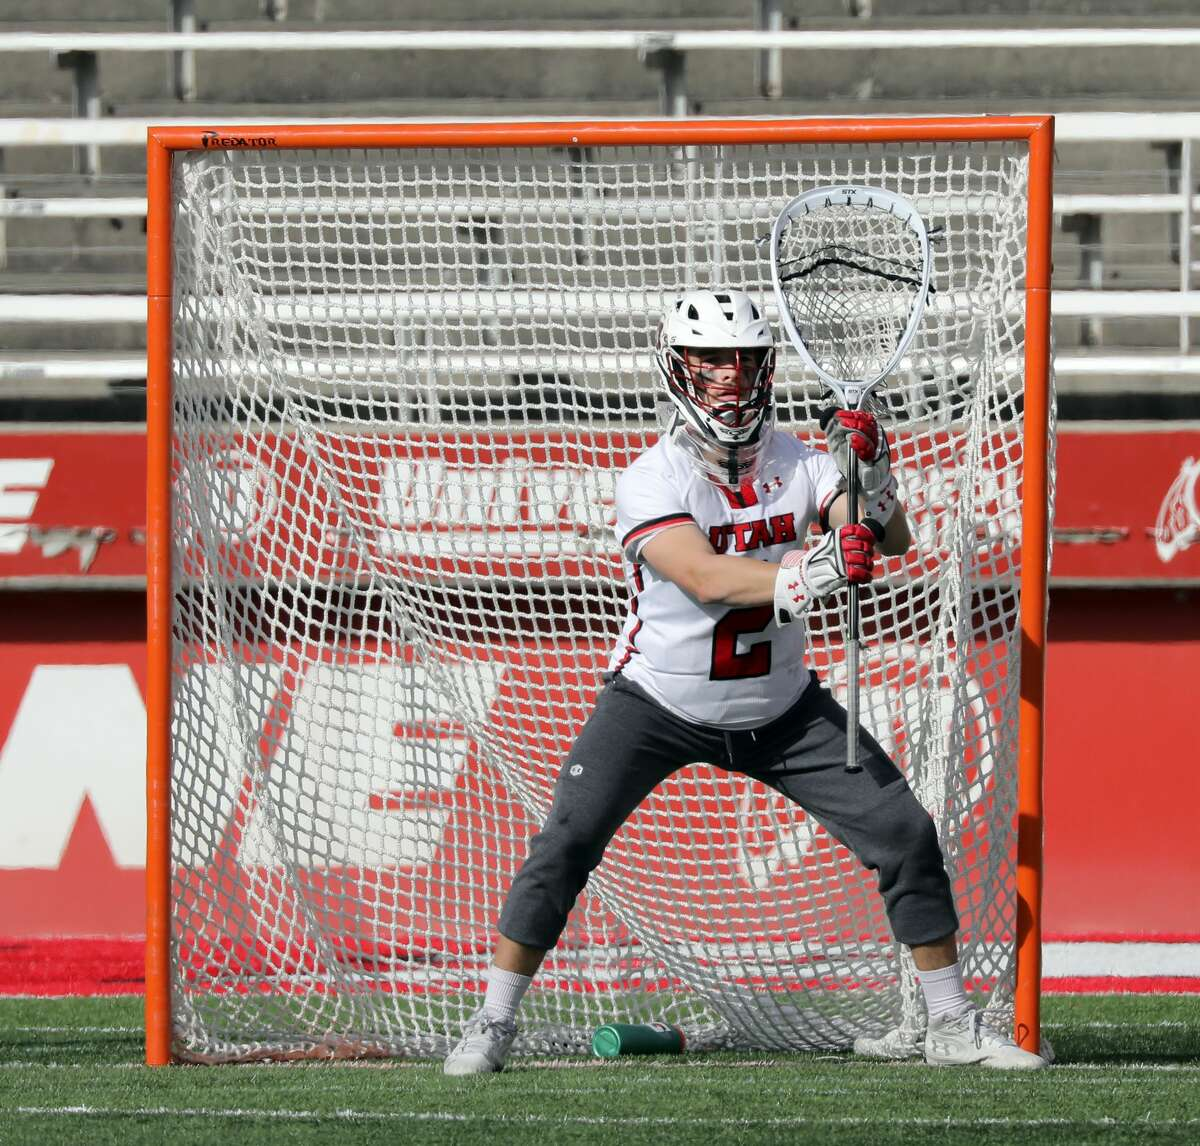 Liam Donnelly started for the new Division I program at Utah before transferring to UAlbany for a graduate season.(Steve C. Wilson/University of Utah)